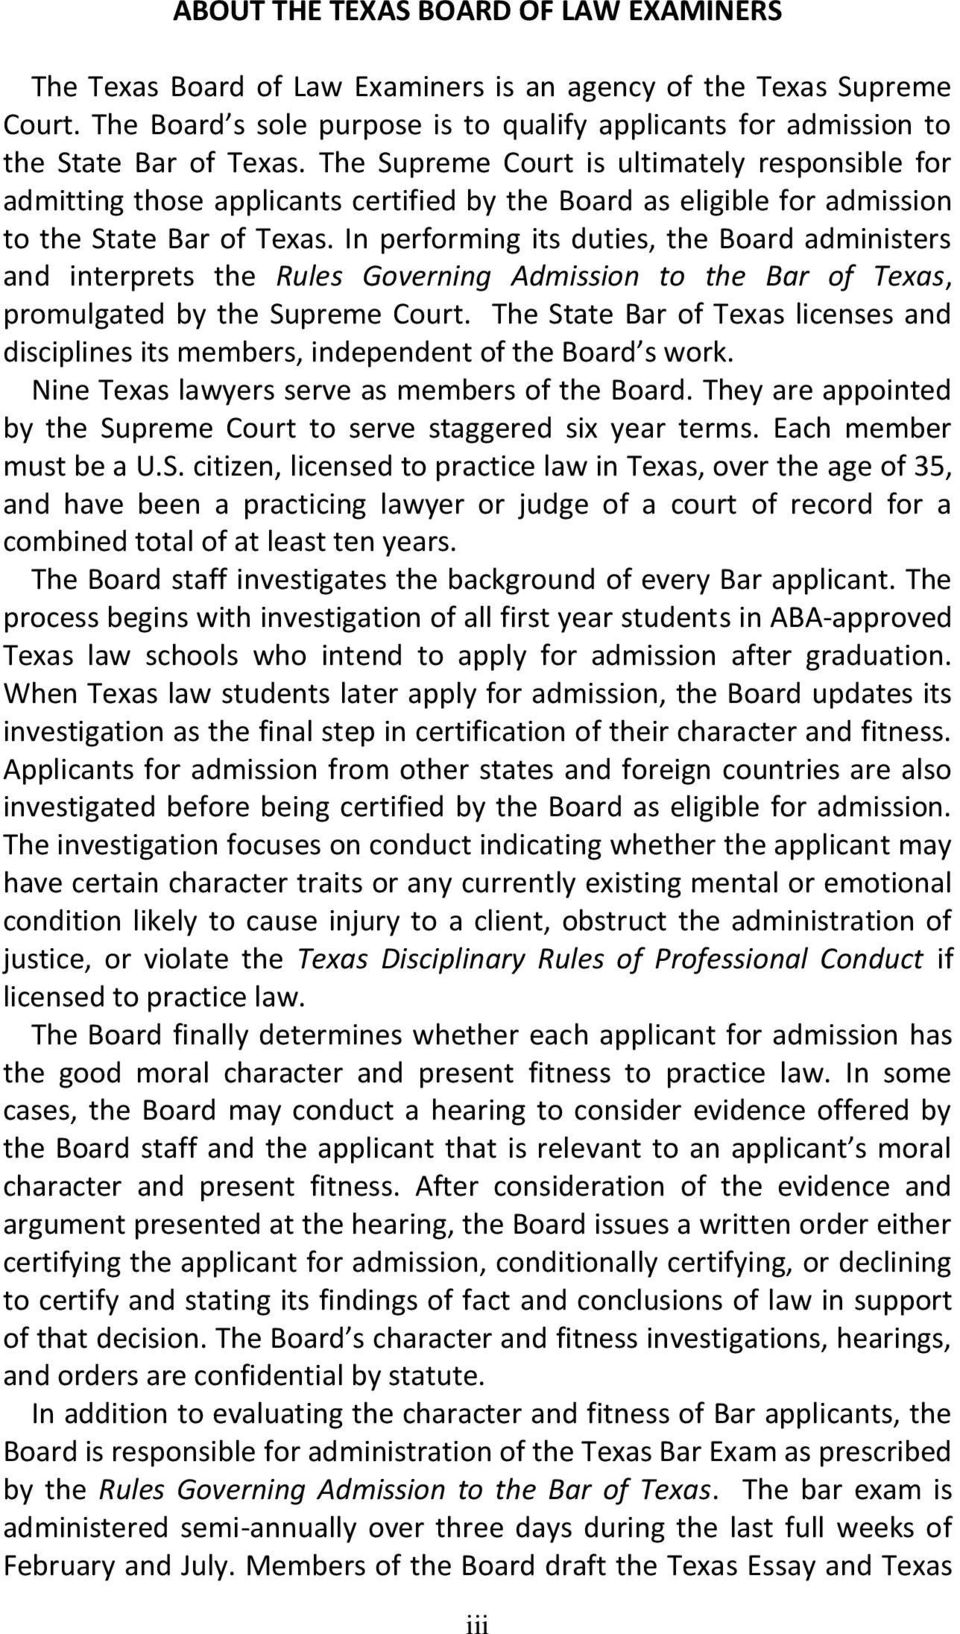 The Supreme Court is ultimately responsible for admitting those applicants certified by the Board as eligible for admission to the State Bar of Texas.